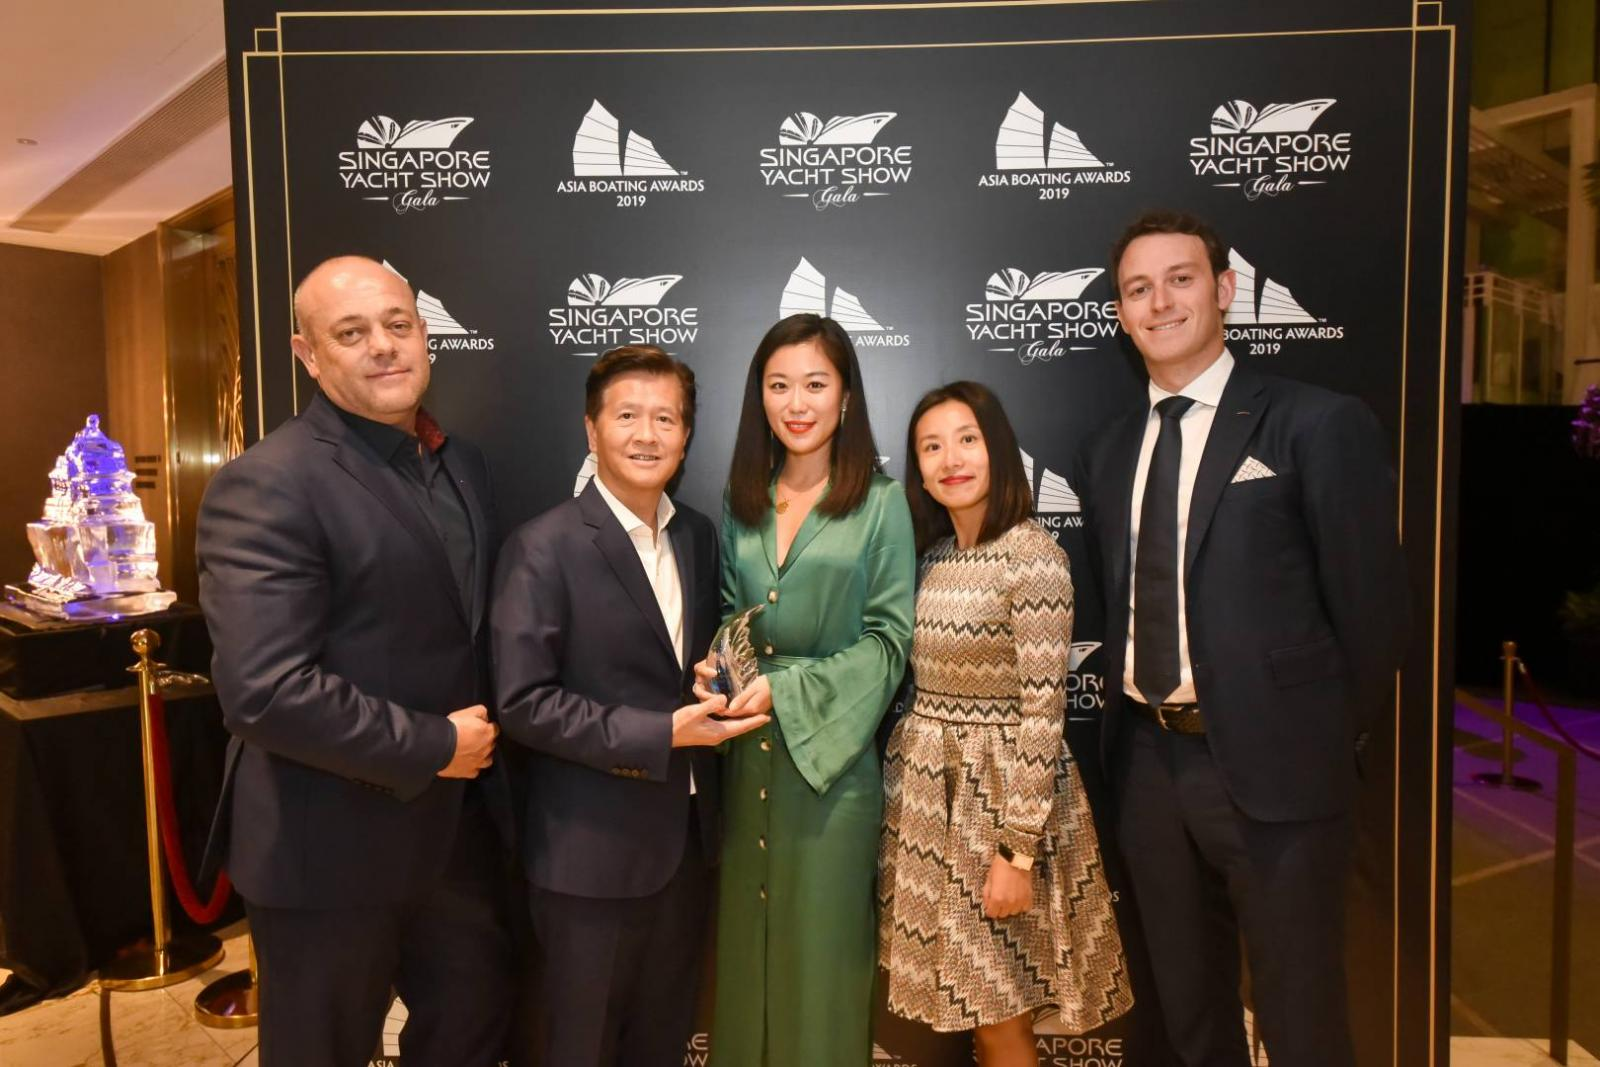 Azimut Yachts Asia Boating Awards